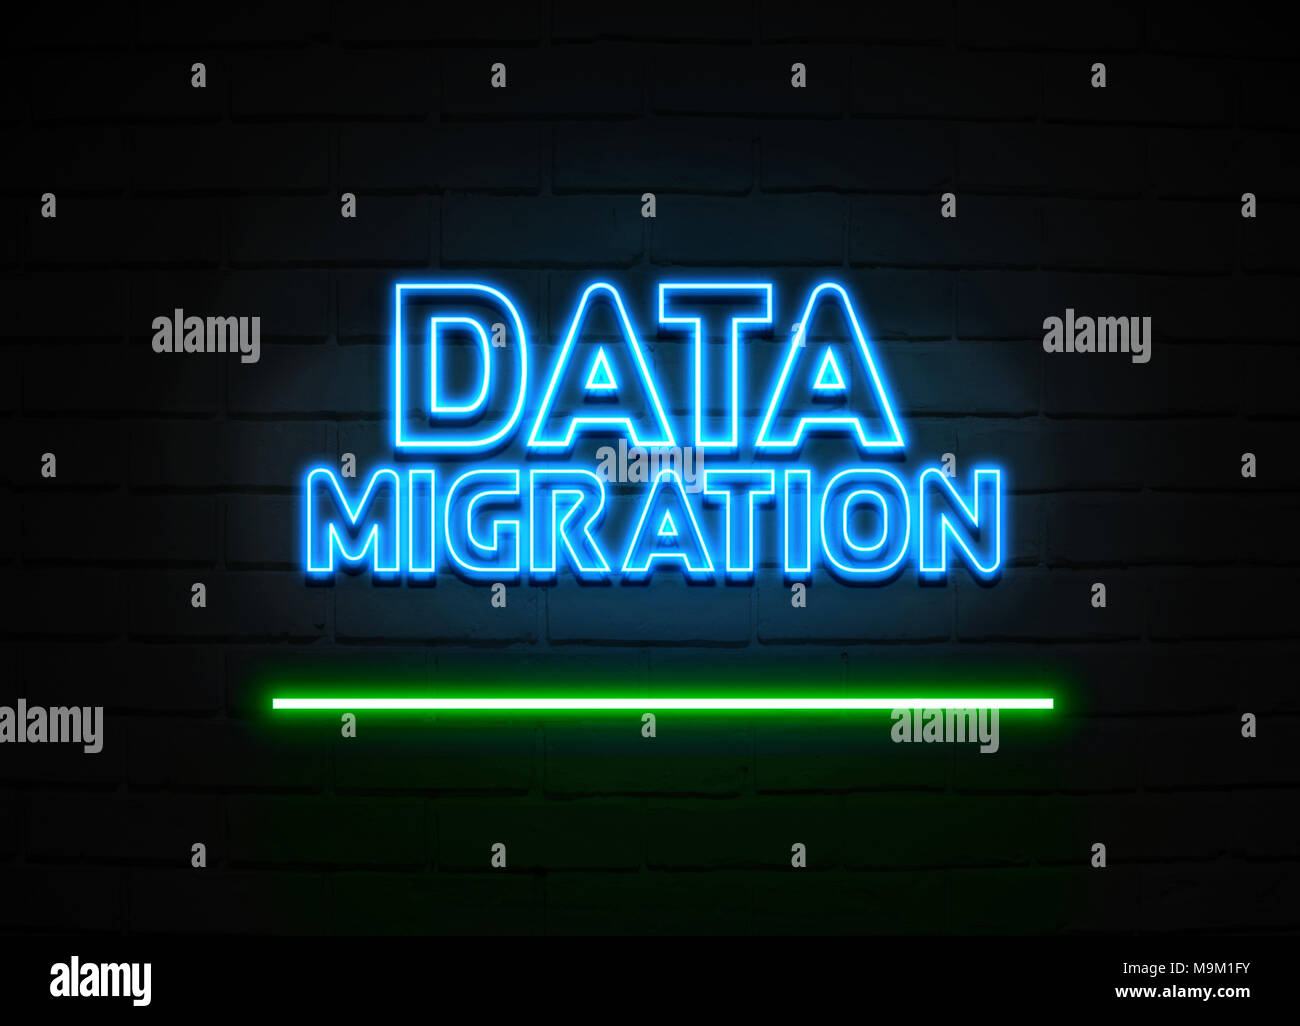 data migration neon sign glowing neon sign on brickwall wall 3d